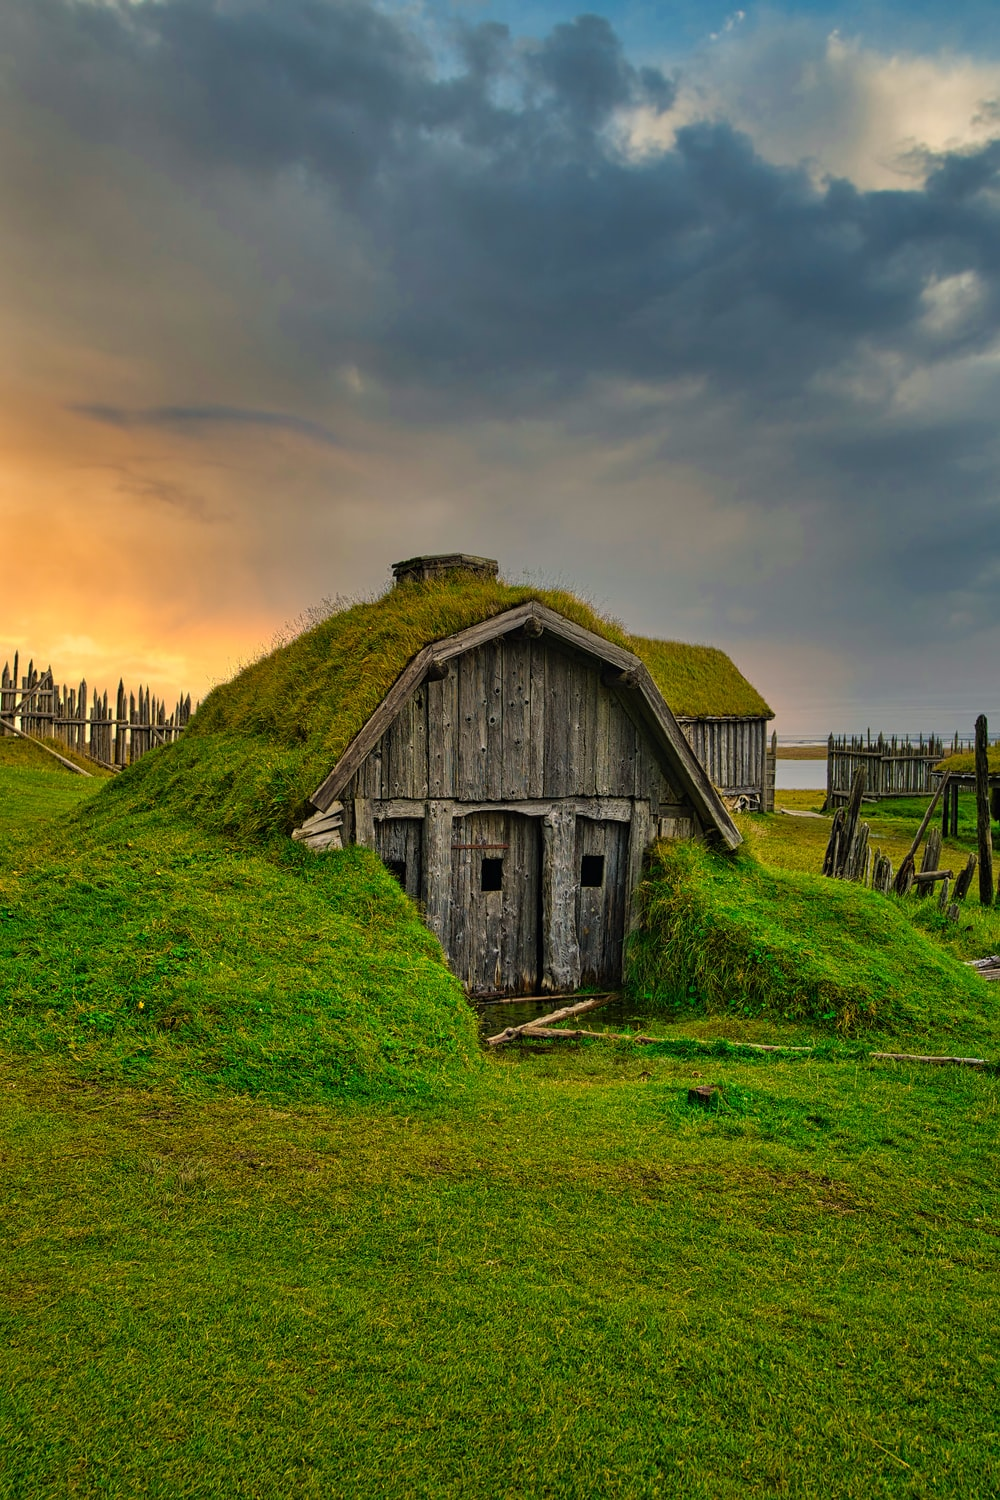 brown wooden house on green grass field during sunset